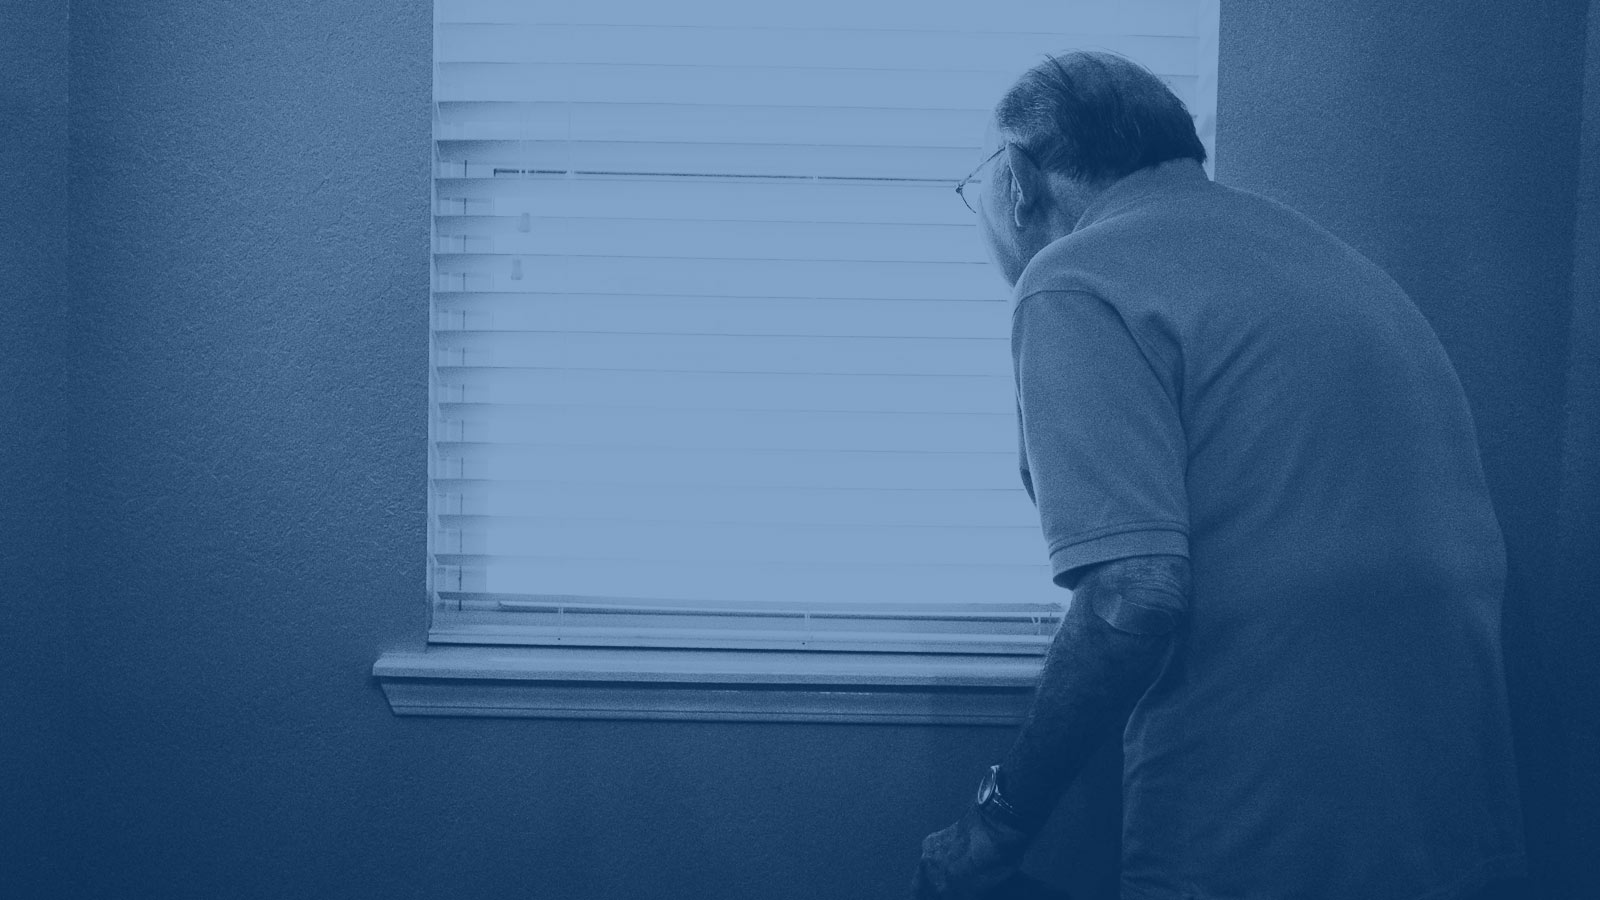 Georgia Nursing Home Abuse Attorney Jon R. Brockman | Representing Victims of Nursing Home Abuse in Atlanta, Carrollville, Cumming, Fayetville, Alpharetta and surrounding areas